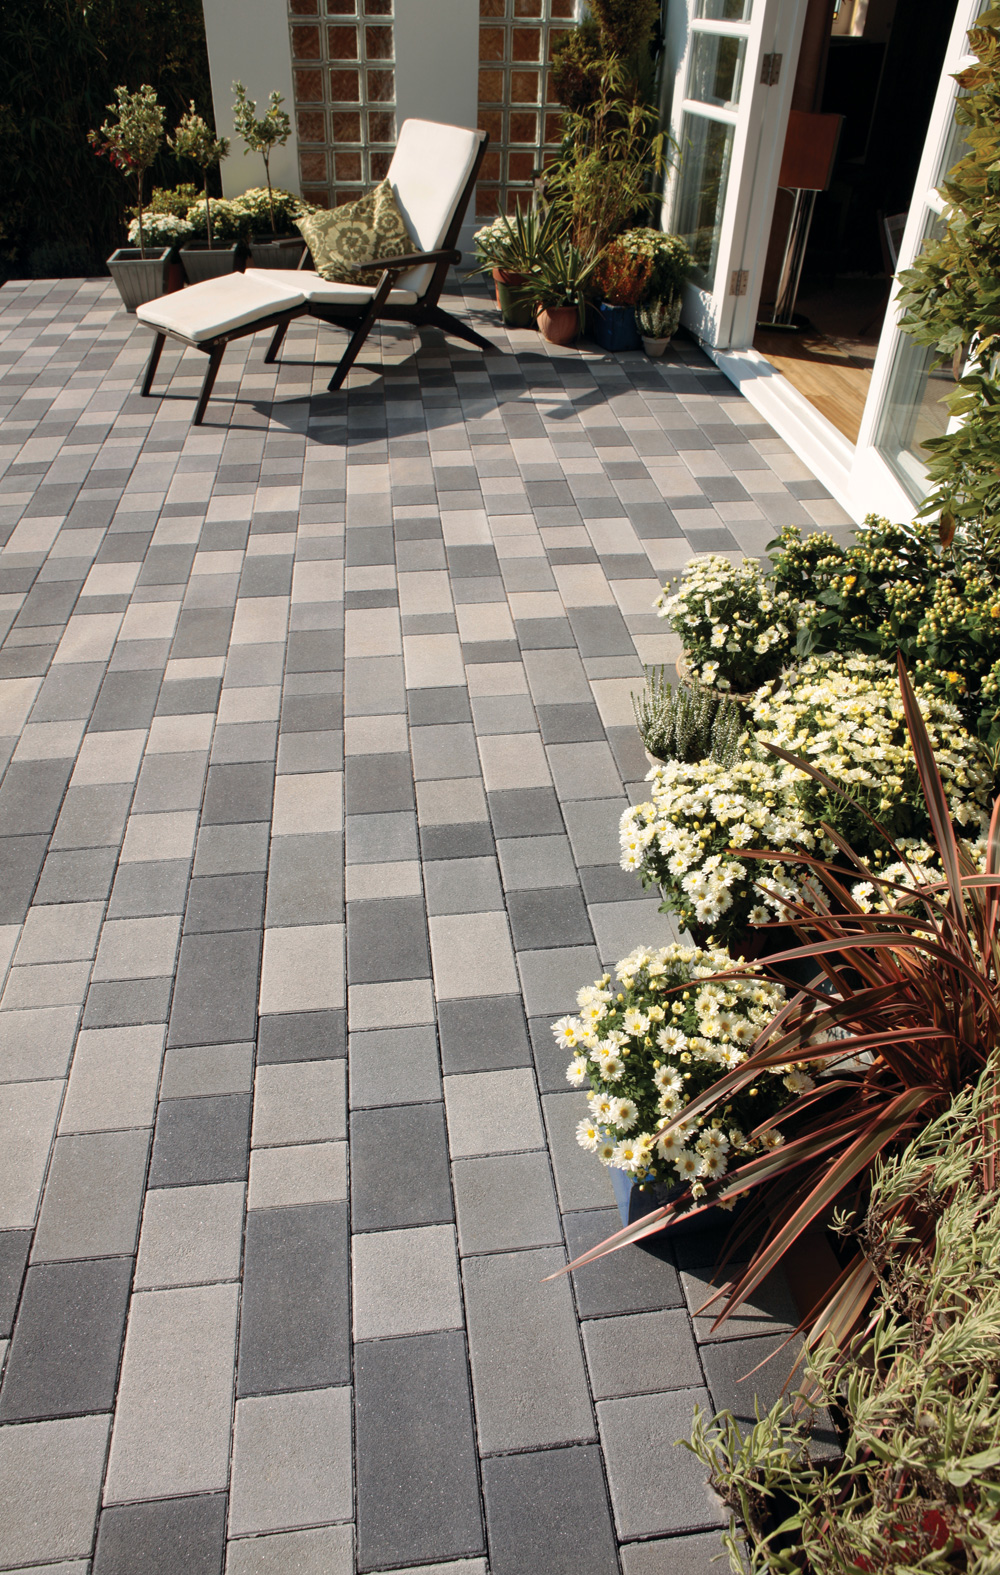 Patio Paver Patterns 2 Sizes Paving Patterns 4 Sizes